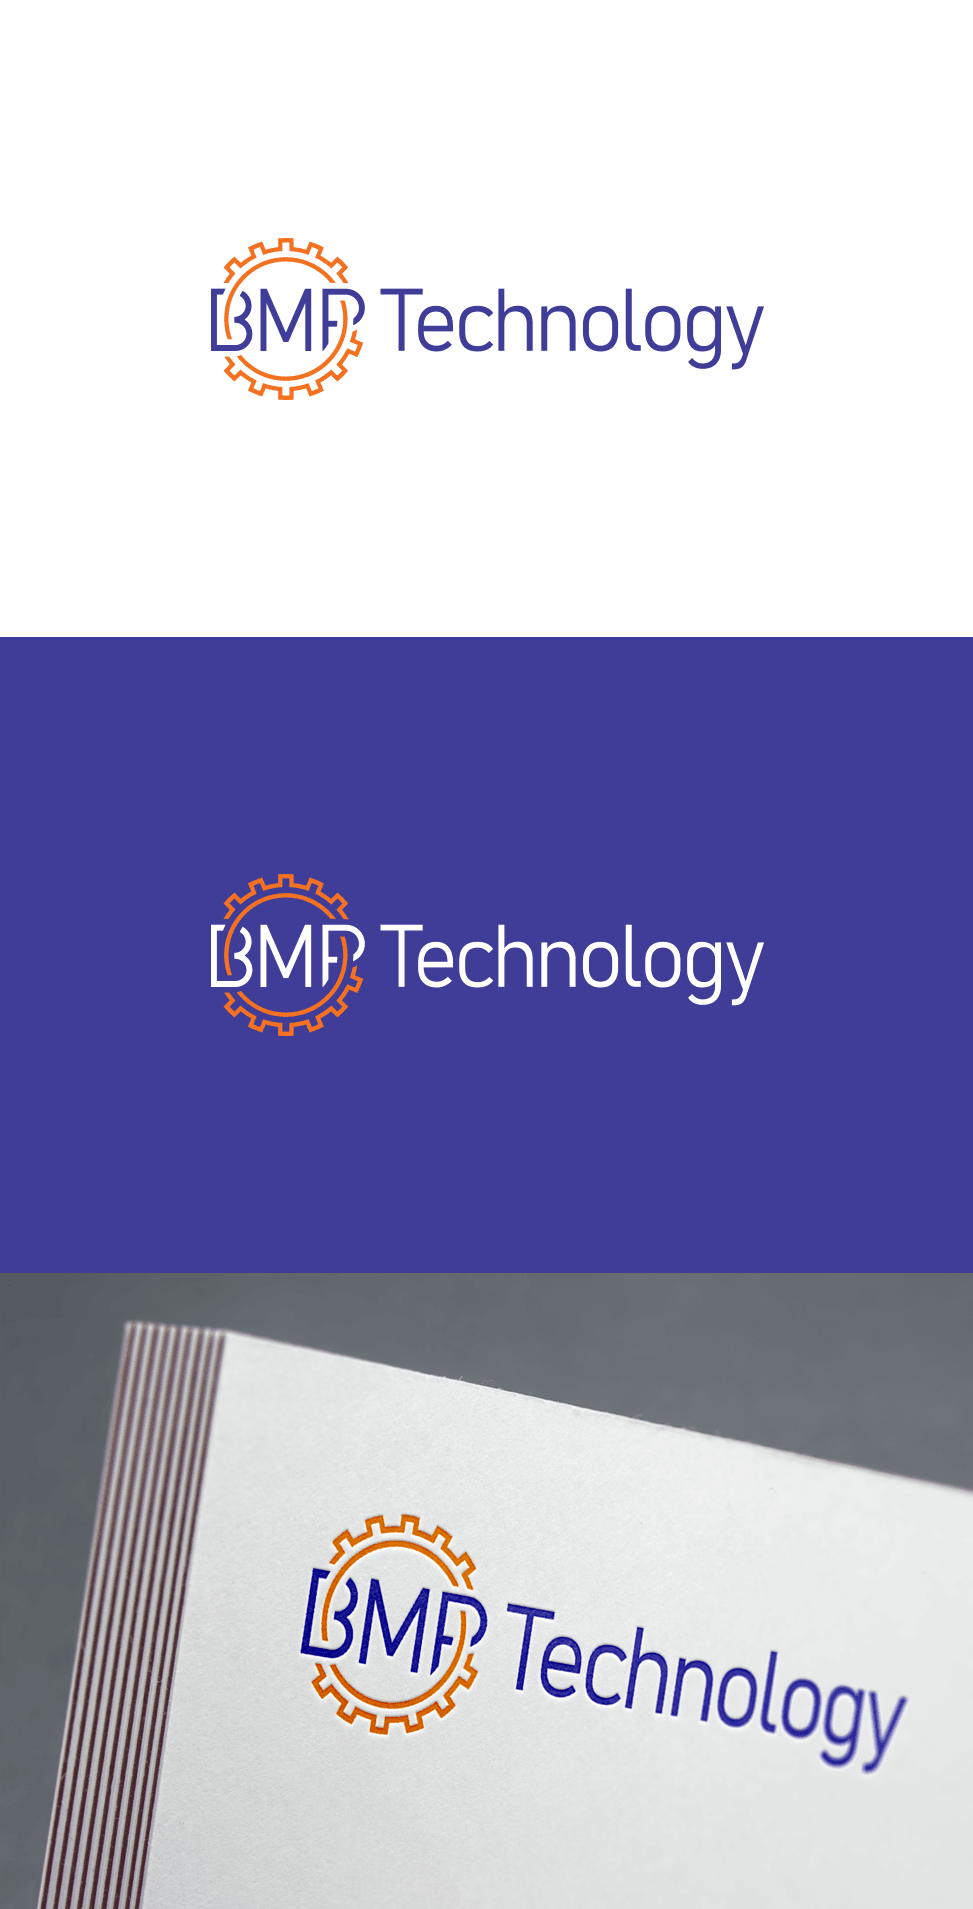 BMP Technology